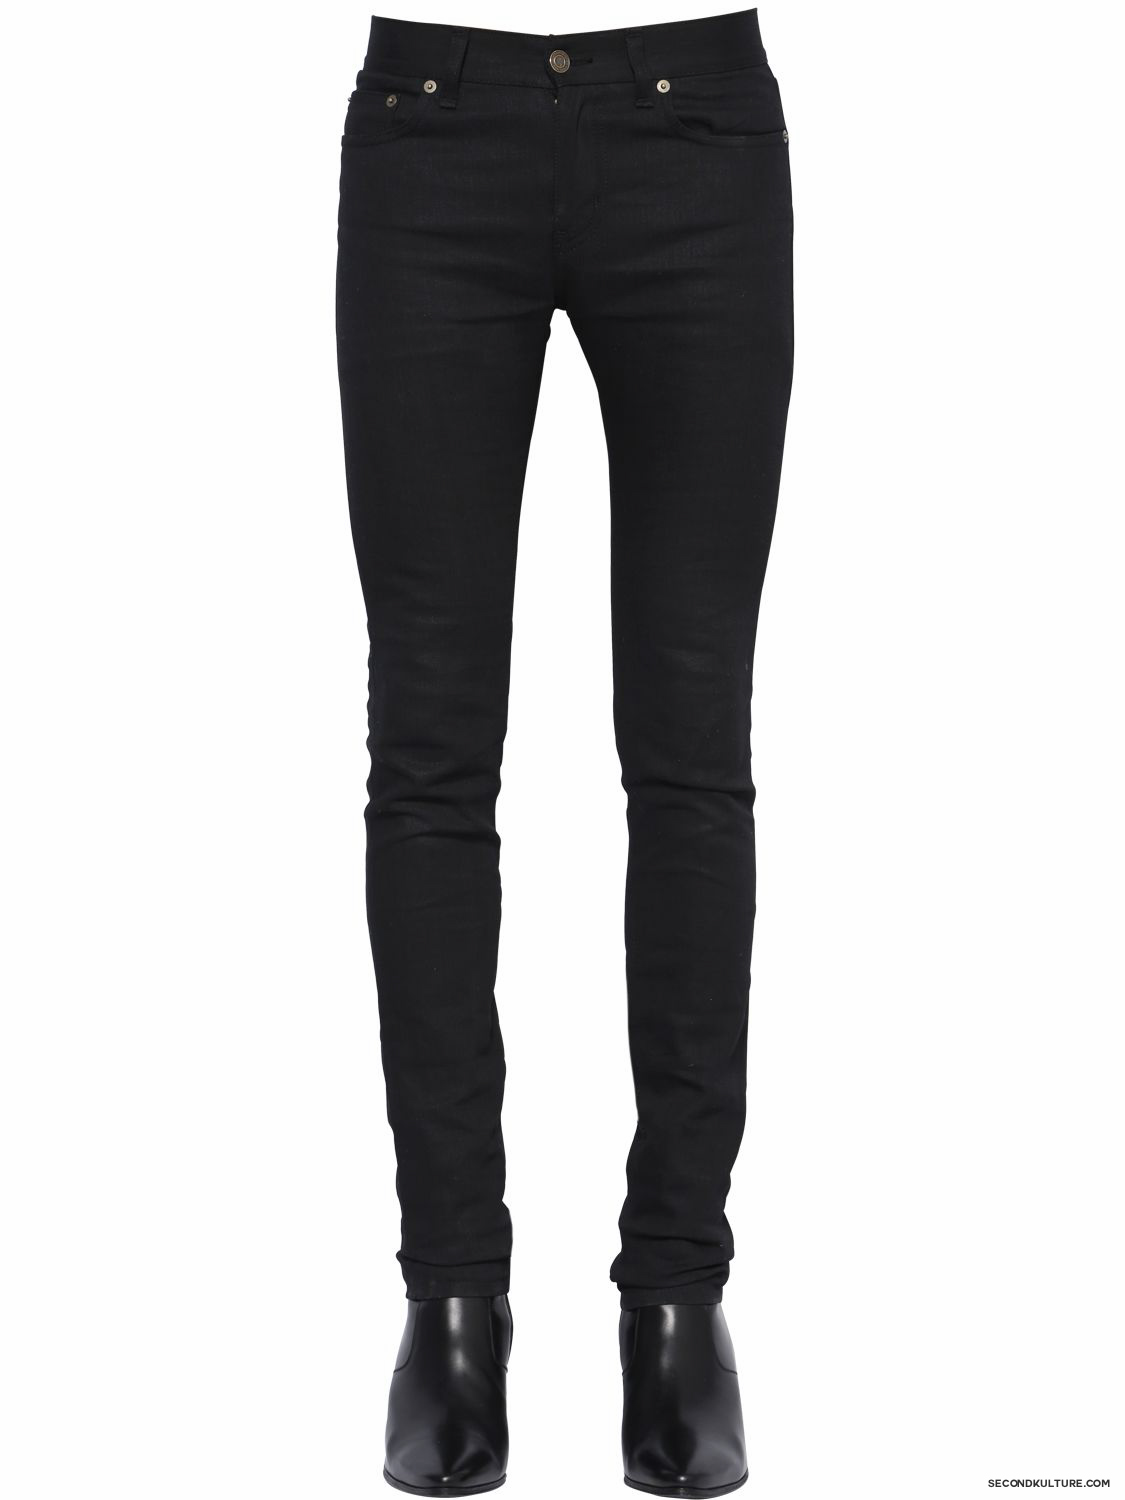 Saint-Laurent-15cm-Black-Classic-Skinny-Stretch-Denim-Jeans-Fall-Winter-2015-1